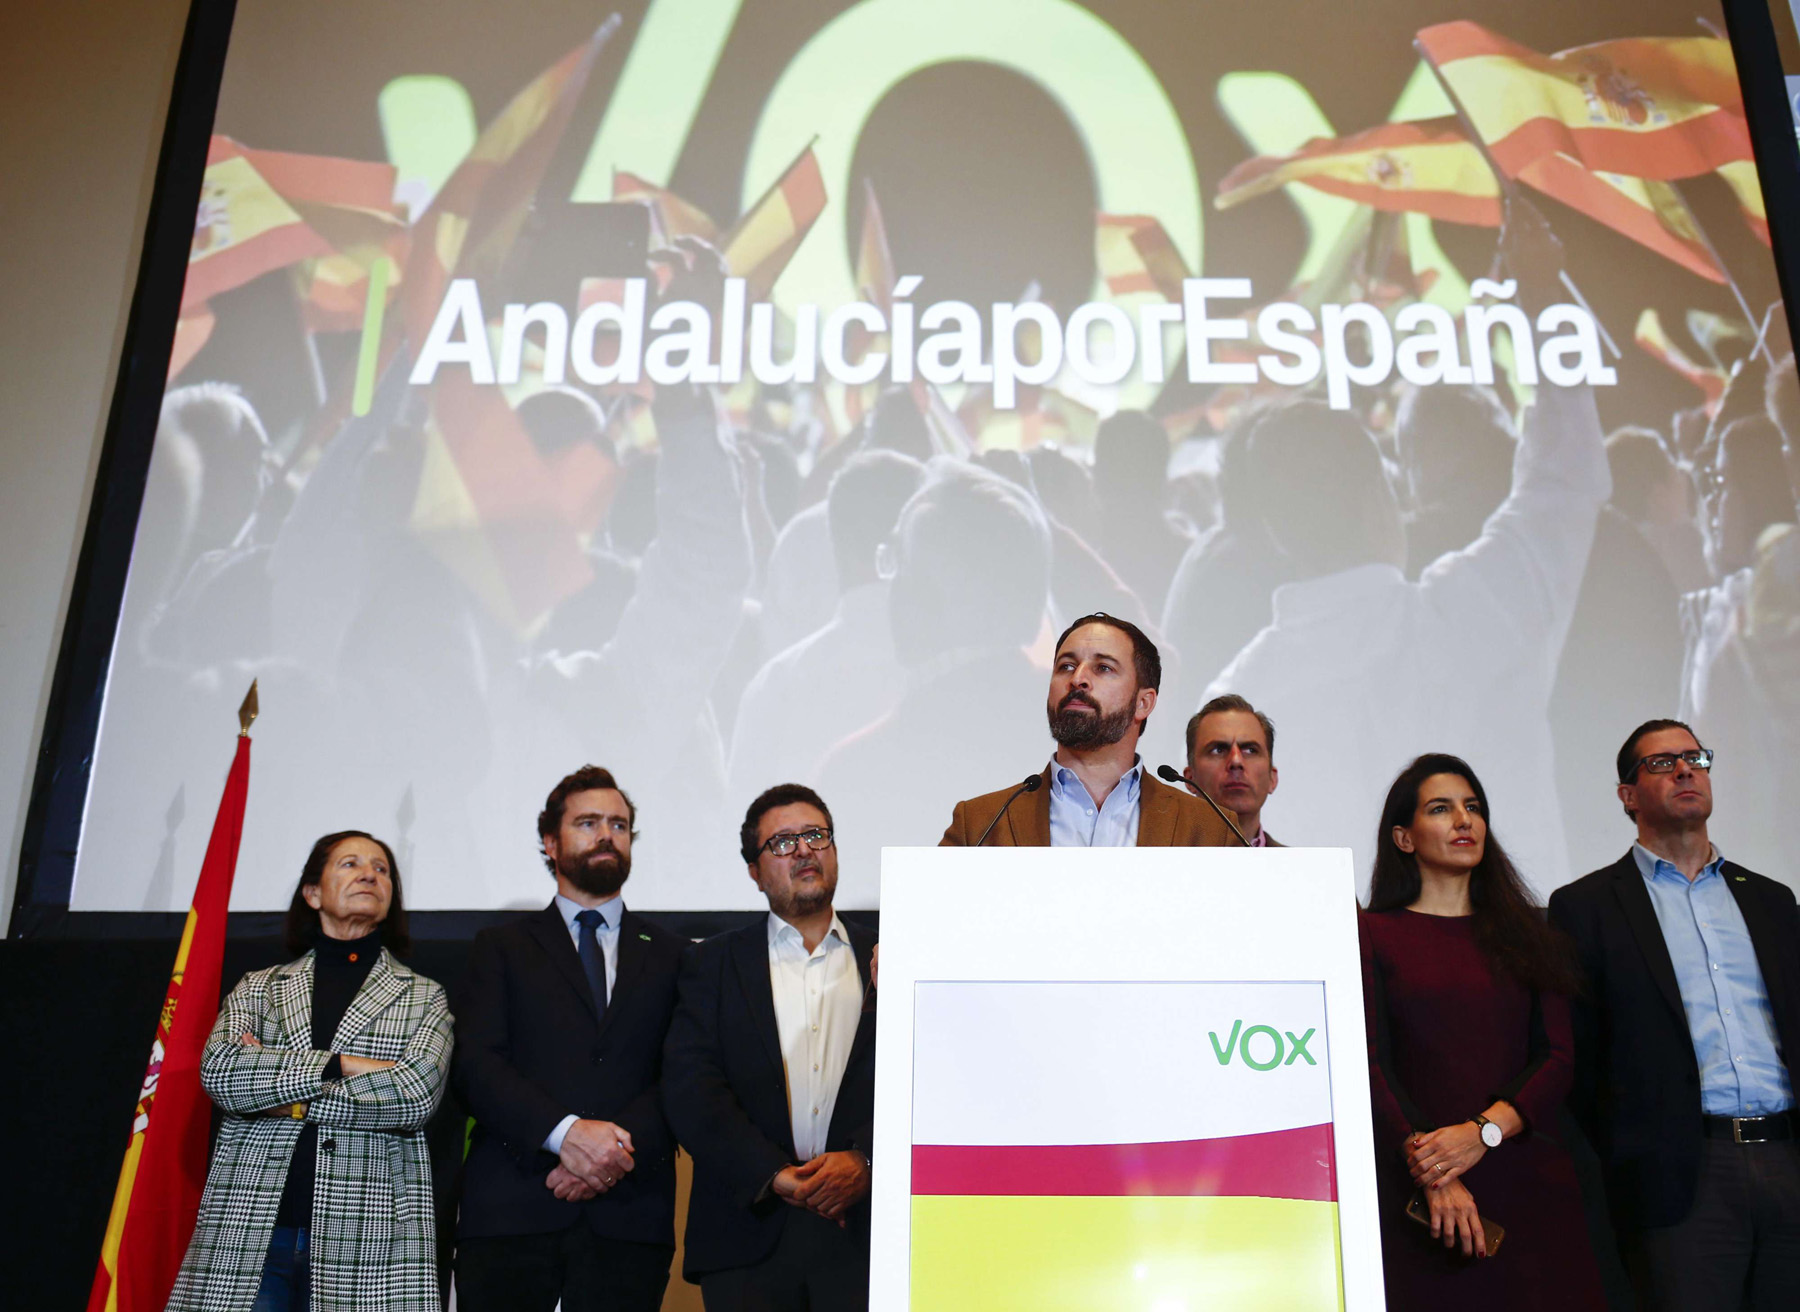 Spain's far-right Vox party leader Santiago Abascal (C-R) speaks during a news conference in Seville, December 3. (Reuters)